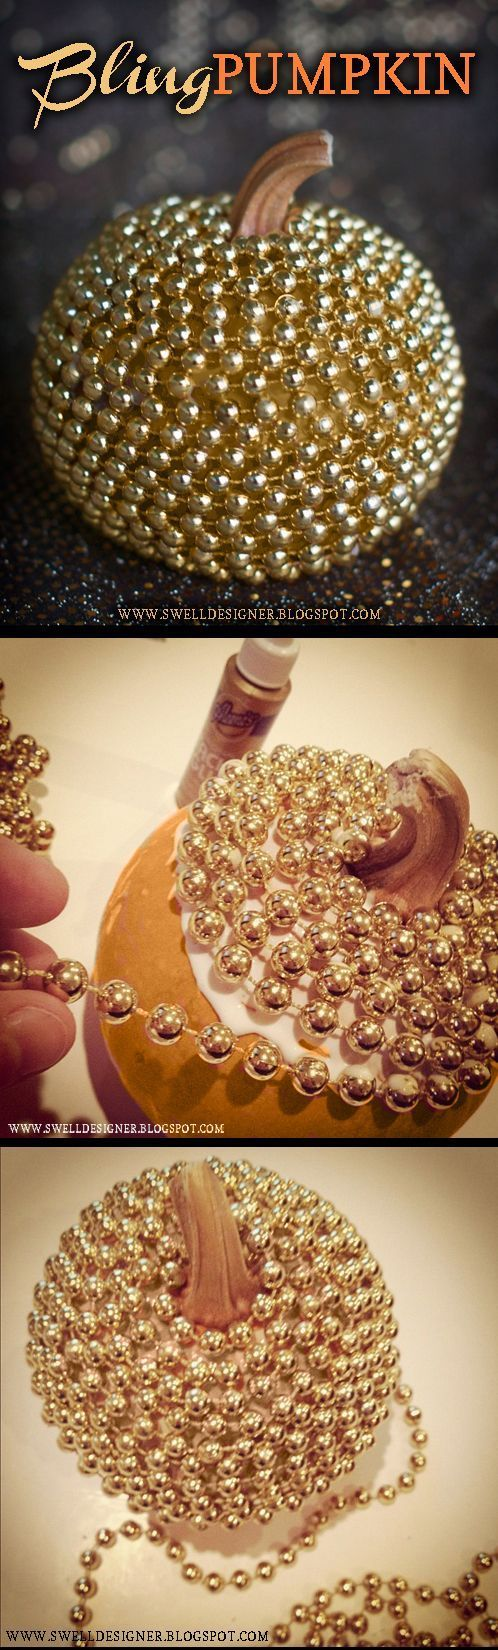 Bling A Pumpkin With Gold Mardi Gras Beads Pictures, Photos, and Images for Facebook, Tumblr, Pinterest, and Twitter